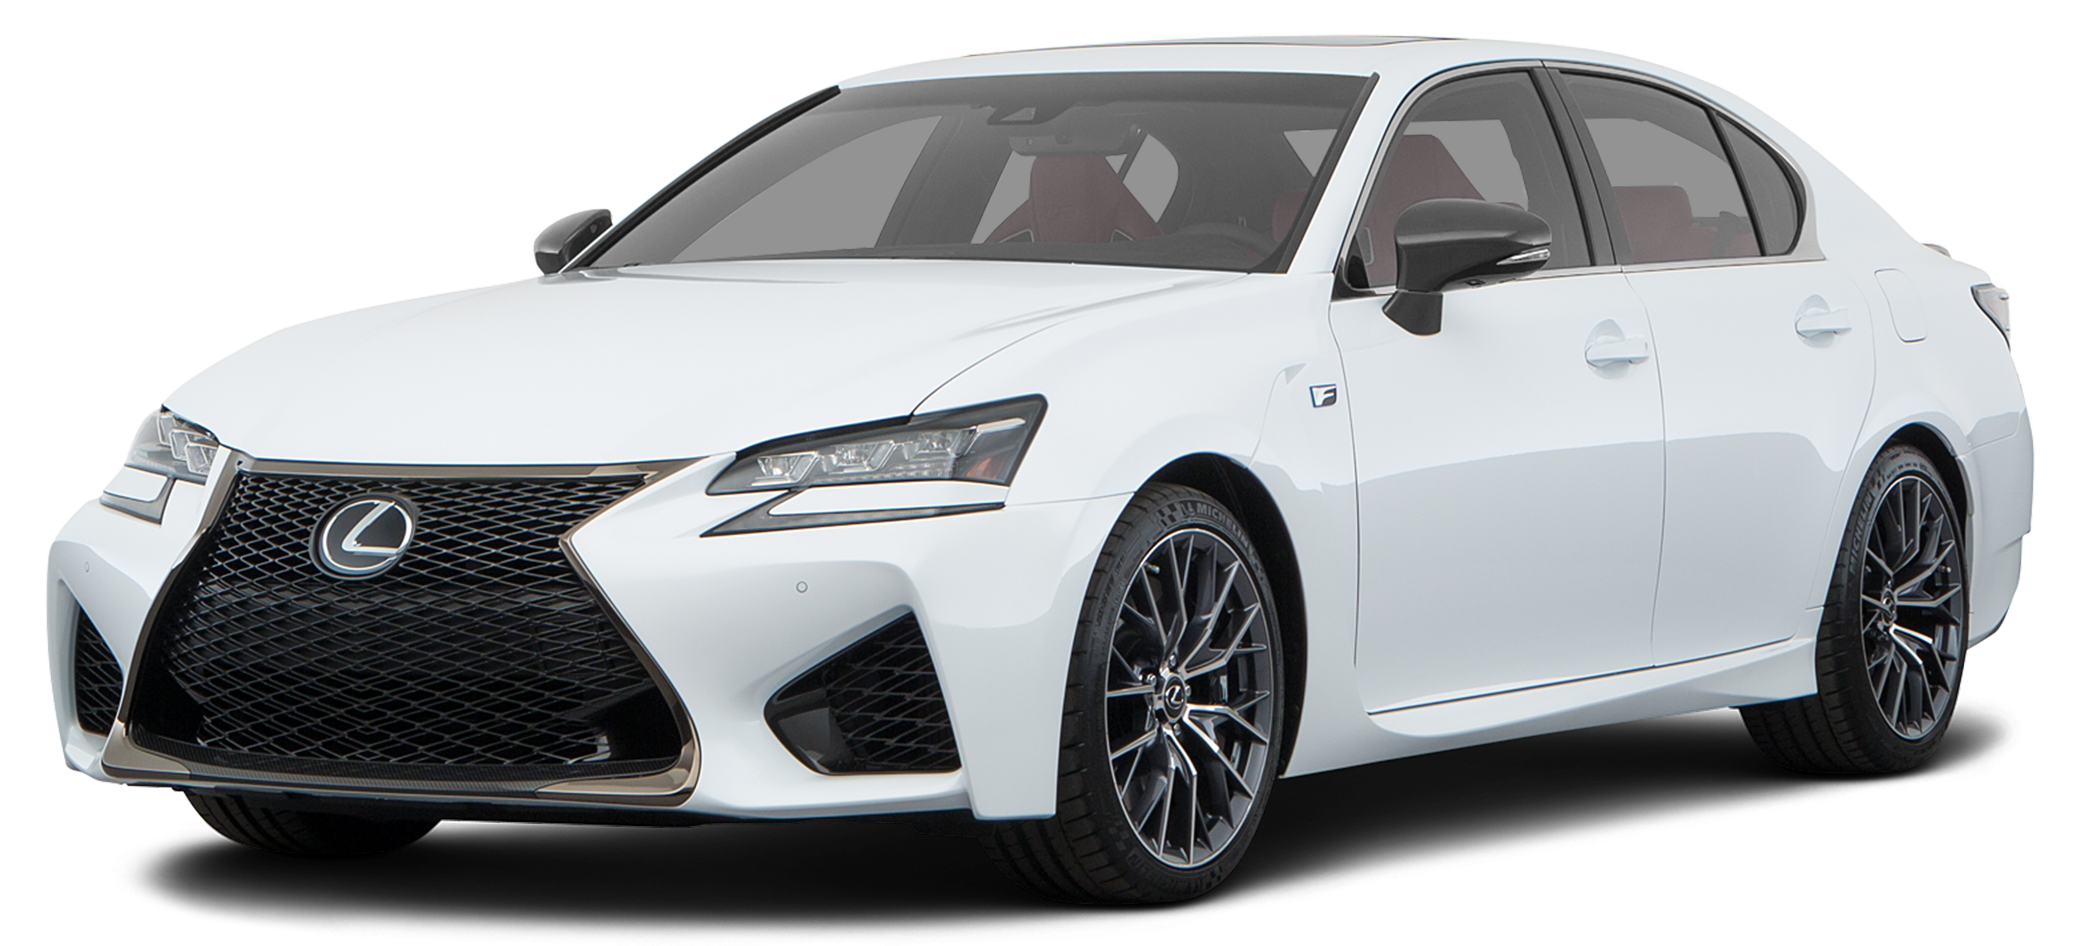 2019 Lexus GS F Incentives Specials & fers in Wilkes Barre PA